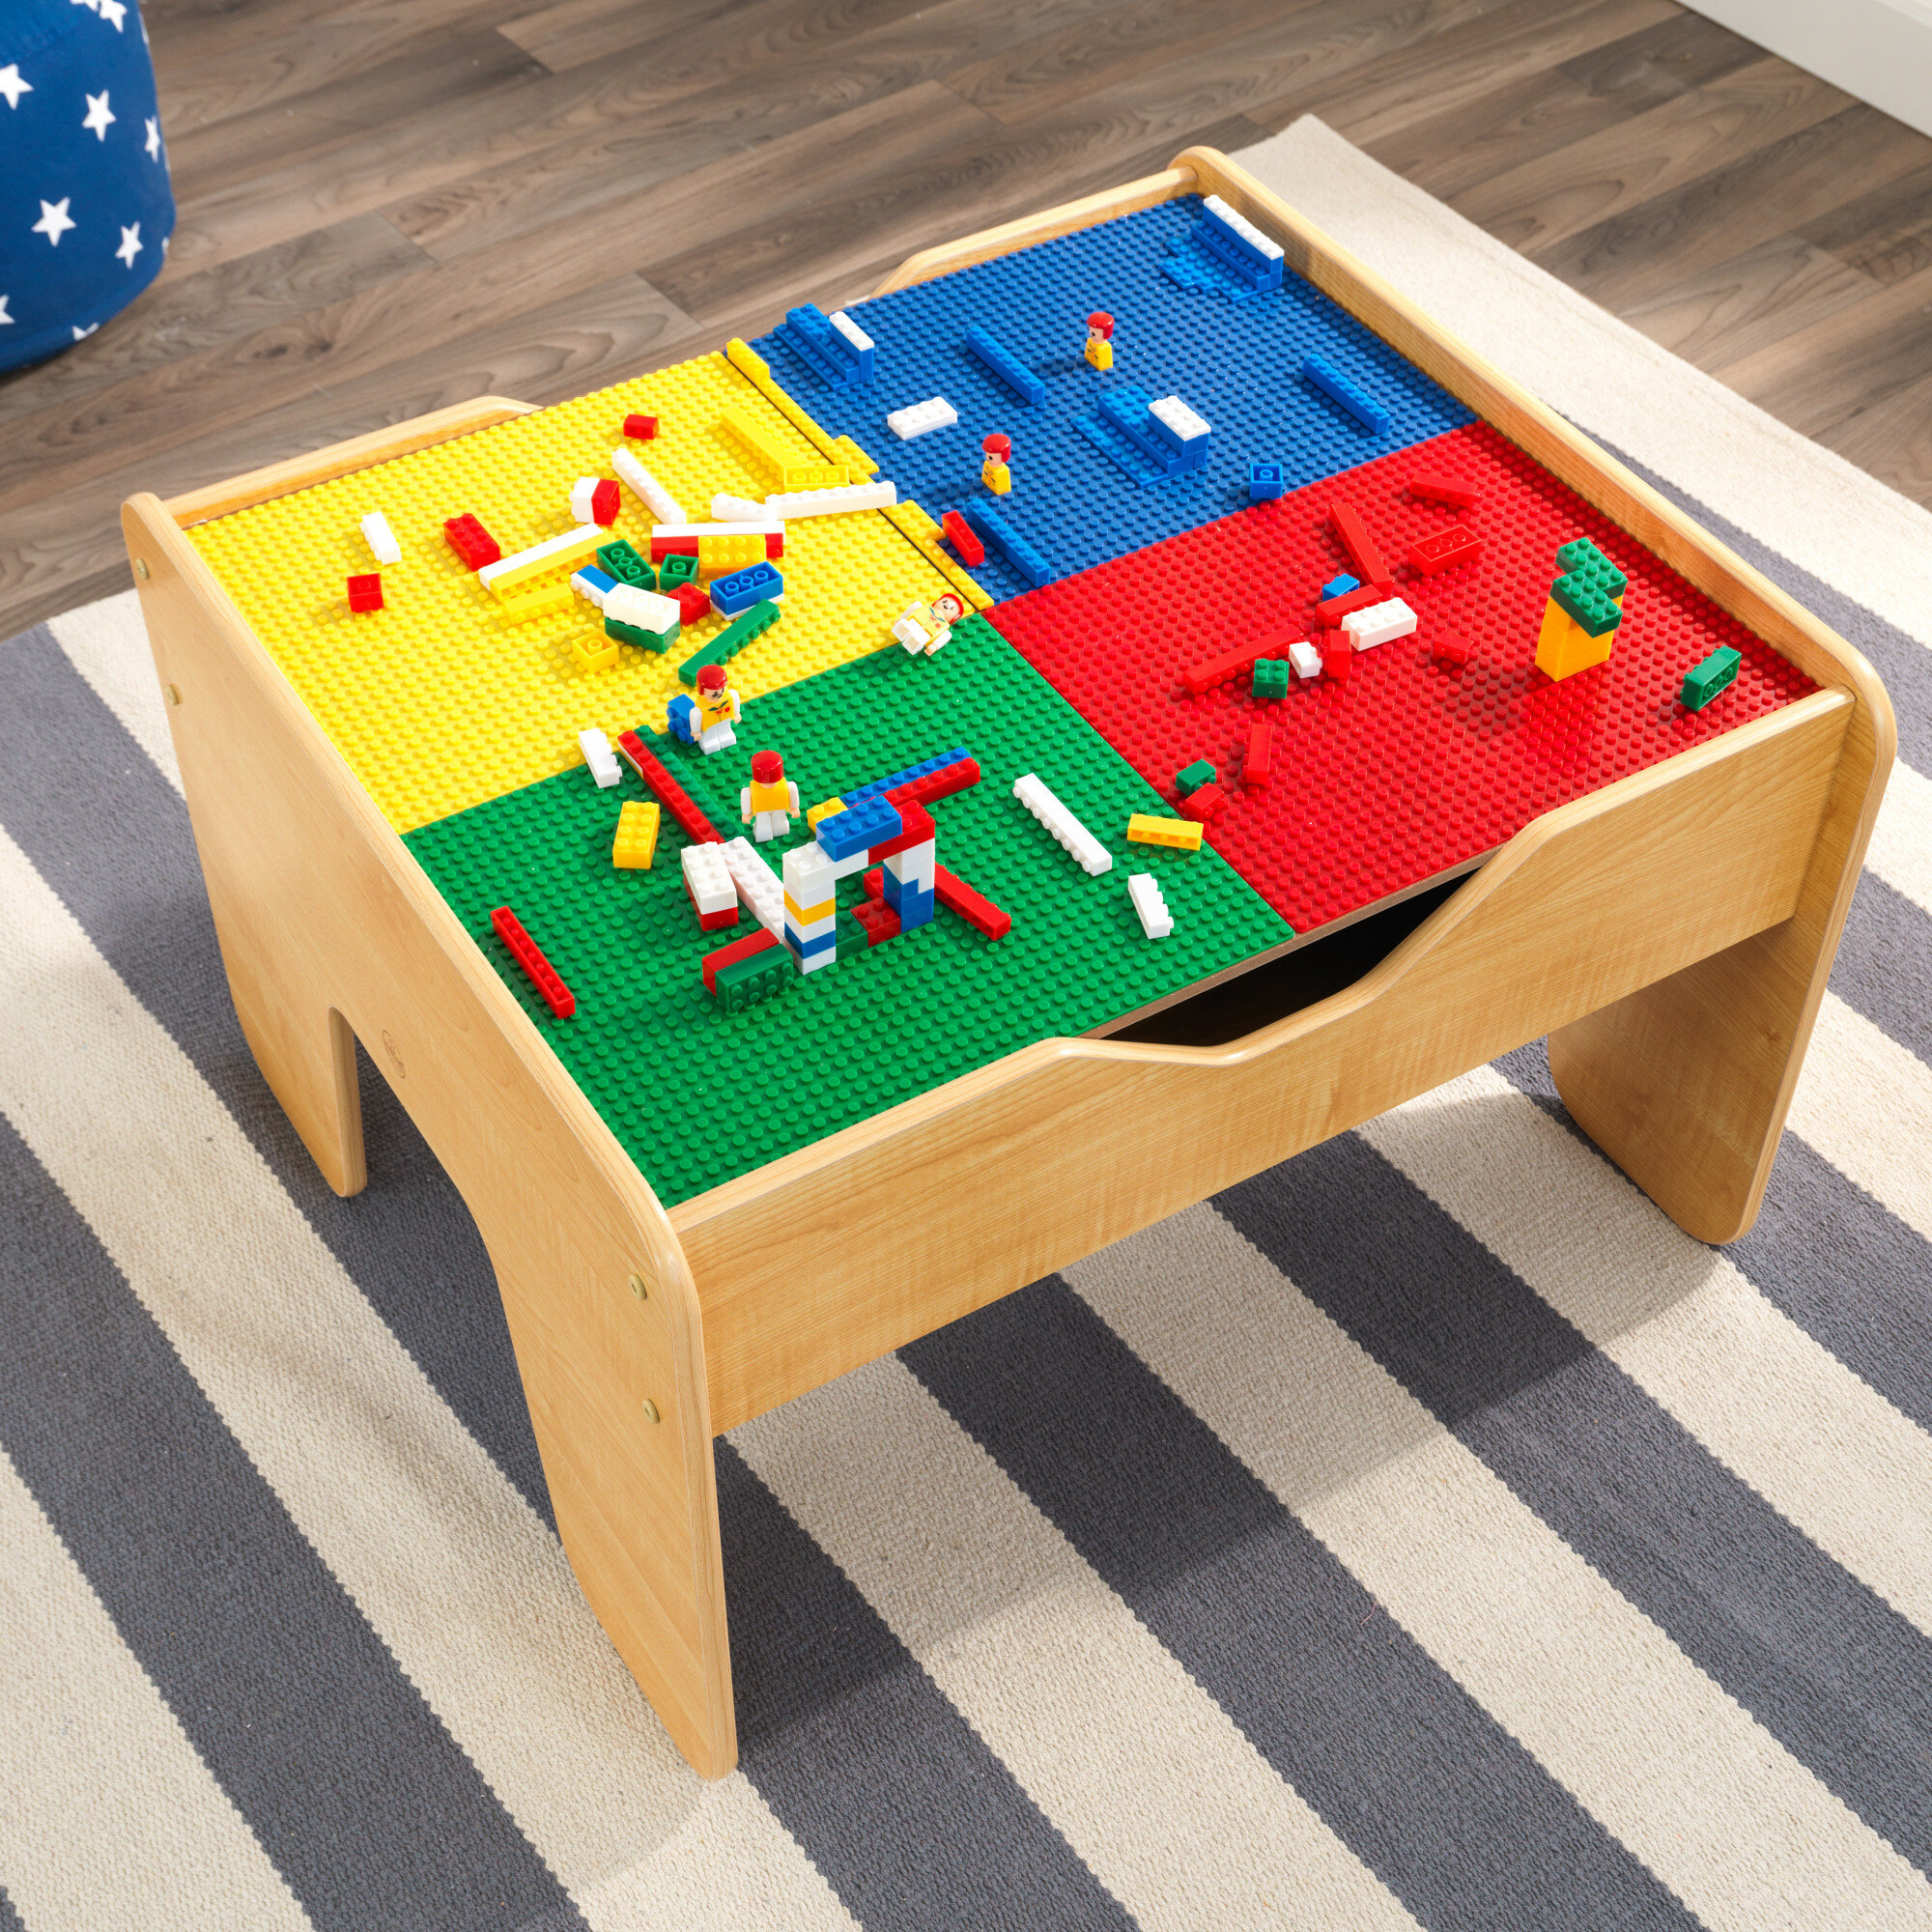 2-in-1 kids activity table